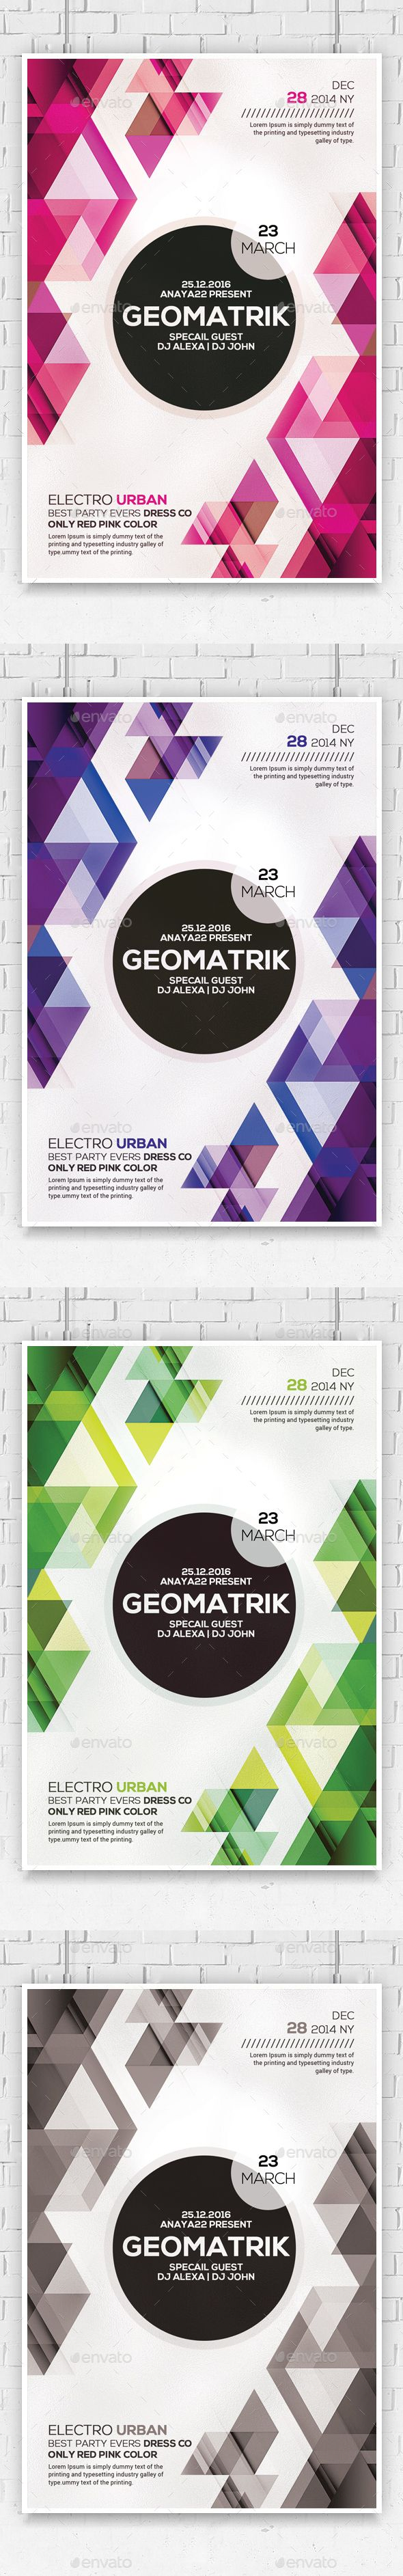 Minimal Geometric Flyer Template PSD #design Download: graphicriver.net/...